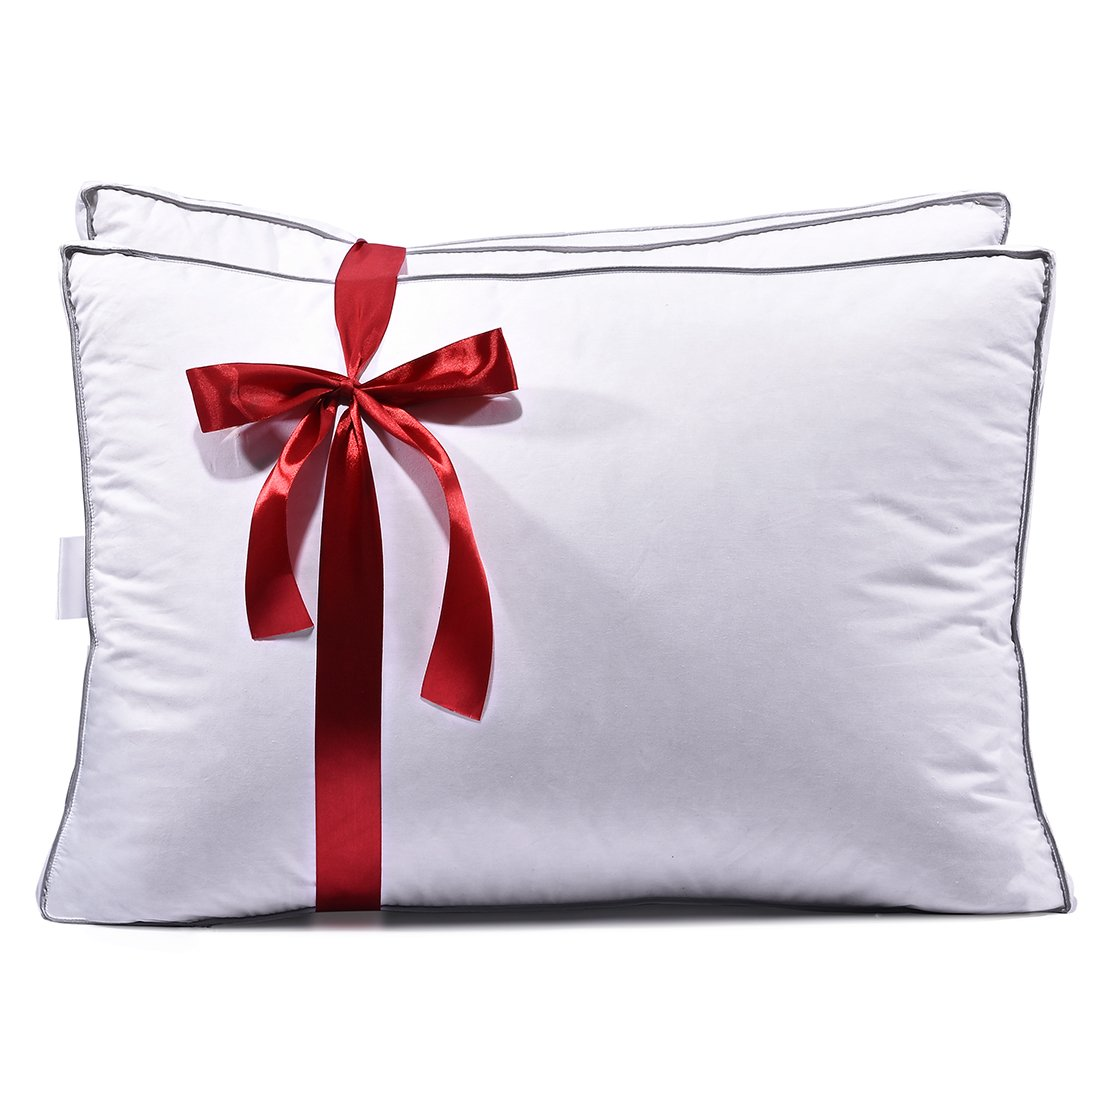 Luxury Hotel Collection Premium White Down Bedding Pillow, 600 Fill Power, 100% Egyptian Cotton Shell, Hypoallergenic, With 2'' Gusset, Pack Of 2, (Standard / Queen Size 18x26'')